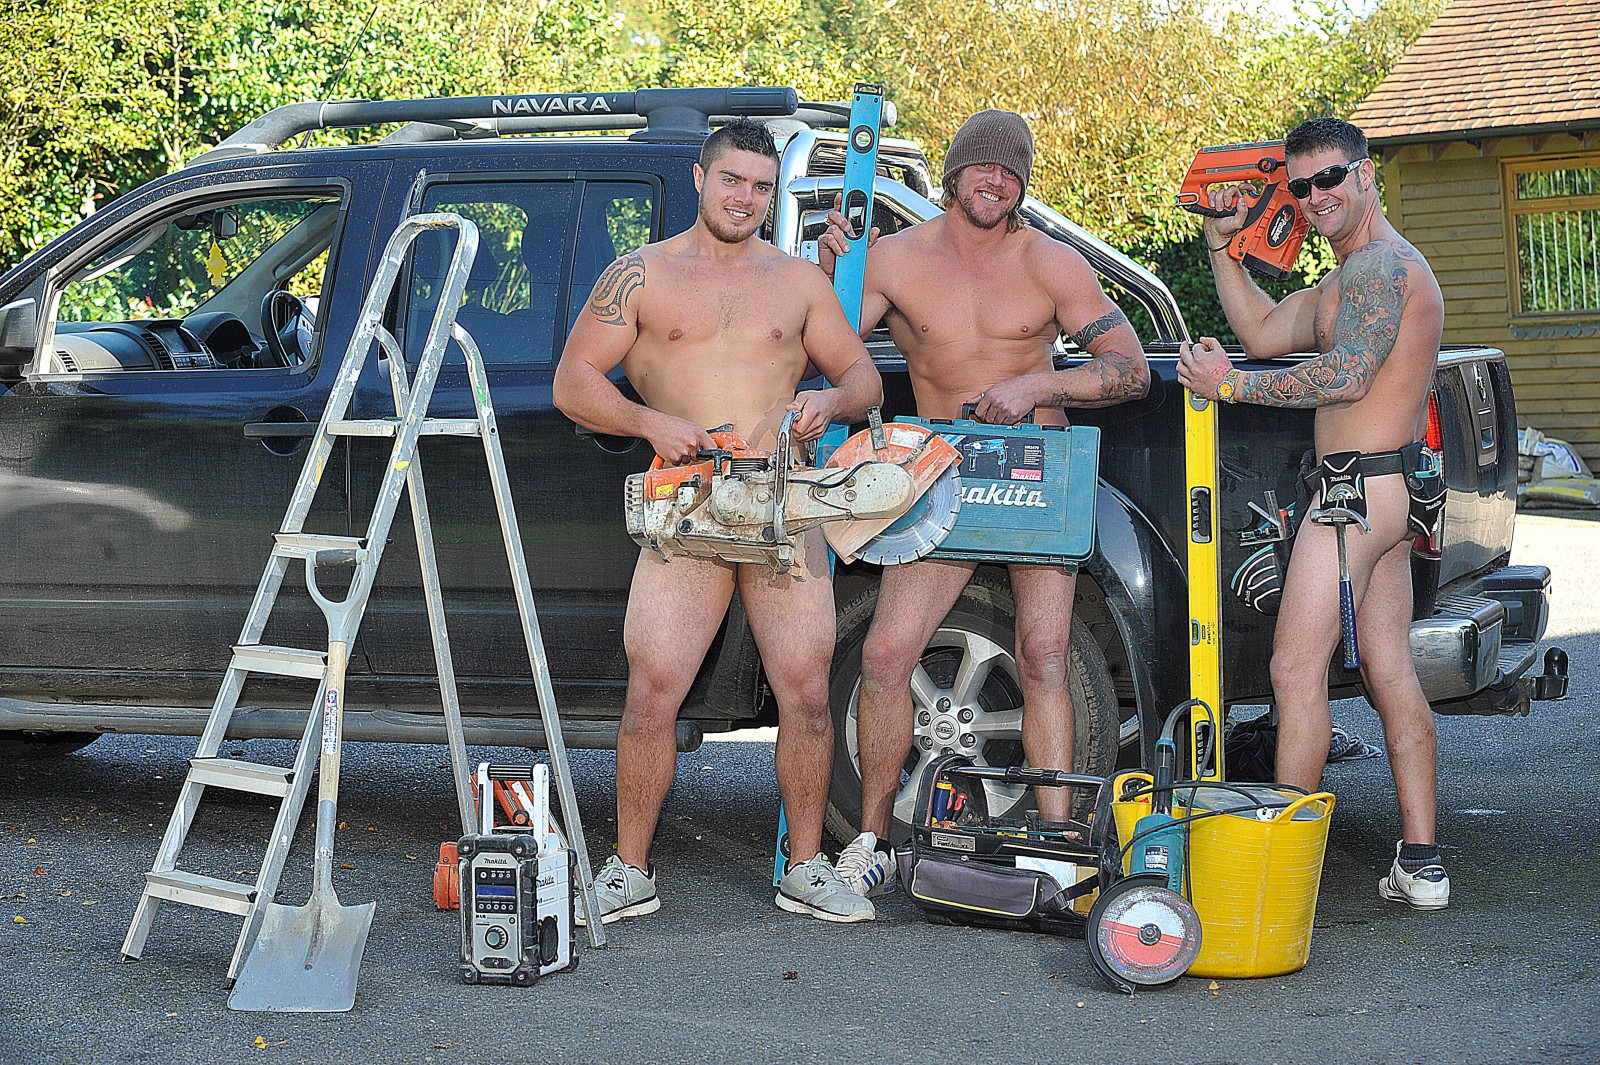 Builders in the buff! Trio strip off once a week to appease their fans